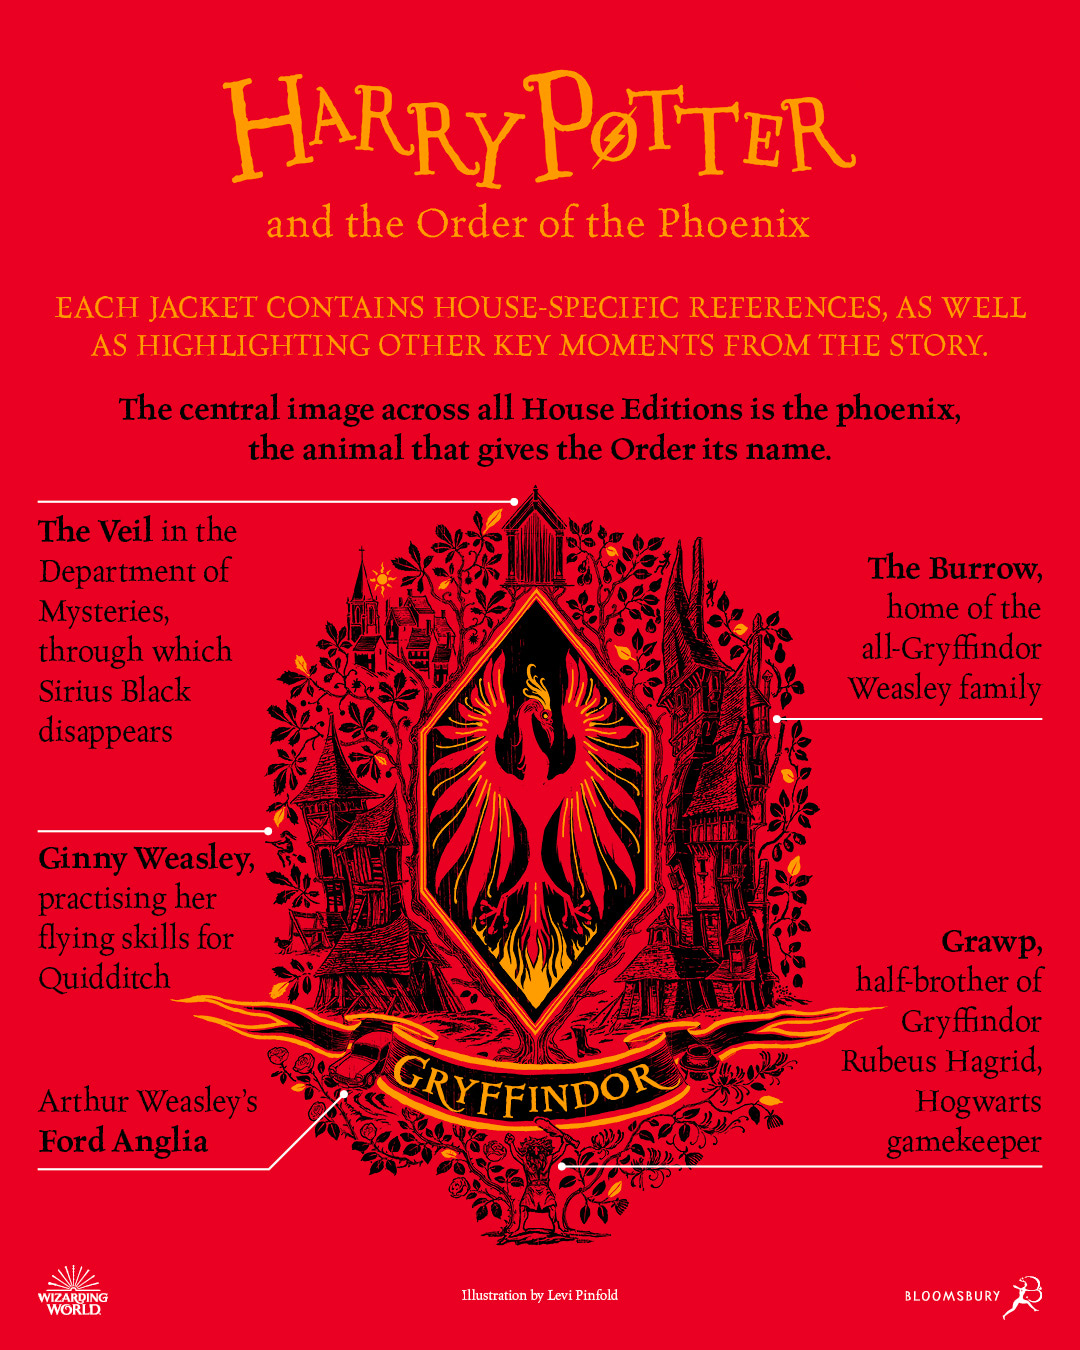 'Order of the Phoenix' house edition cover artwork chart (Gryffindor)